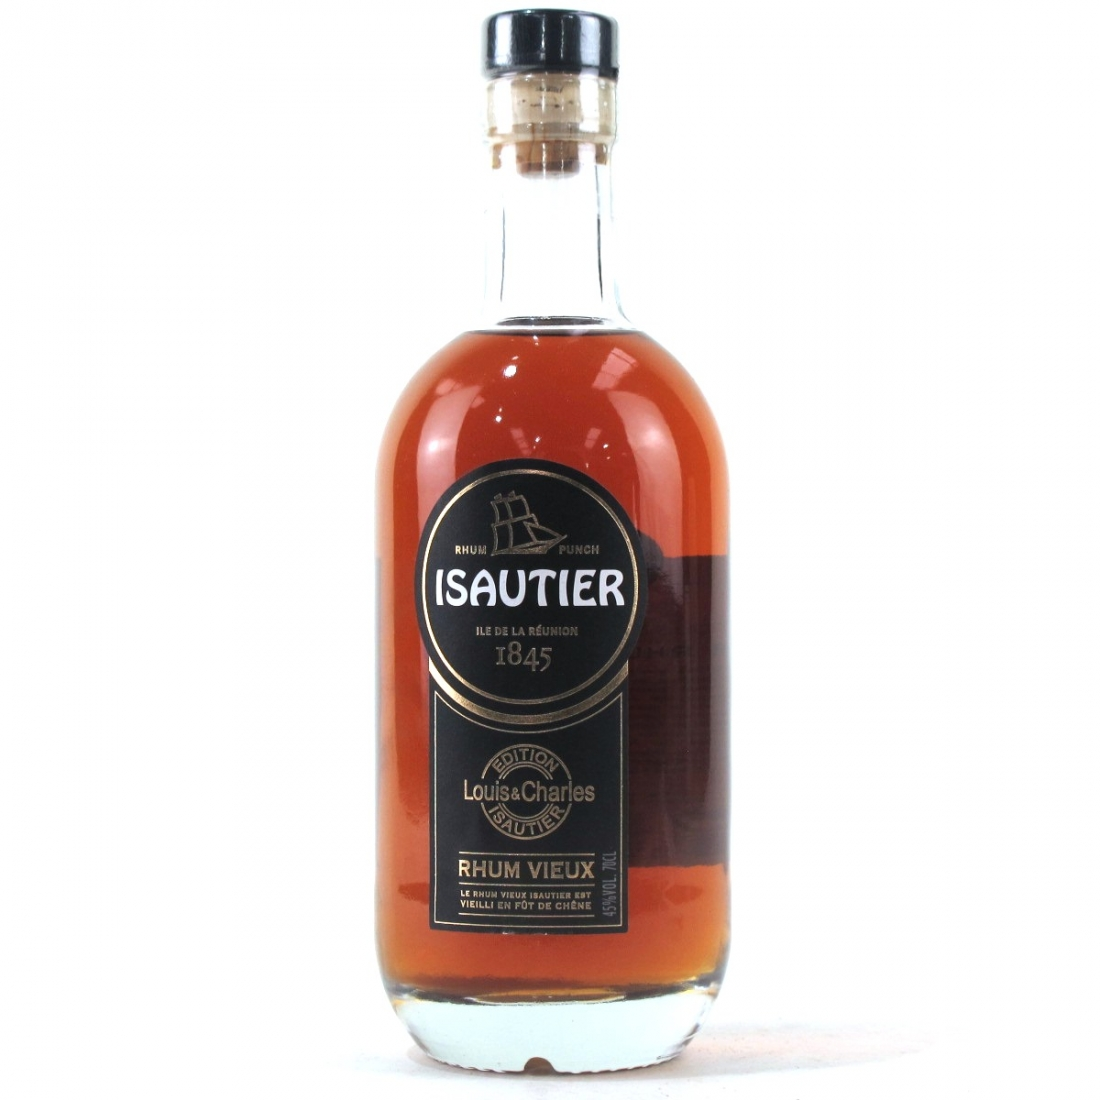 Isautier Louis & Charles Cuvée Old Rum